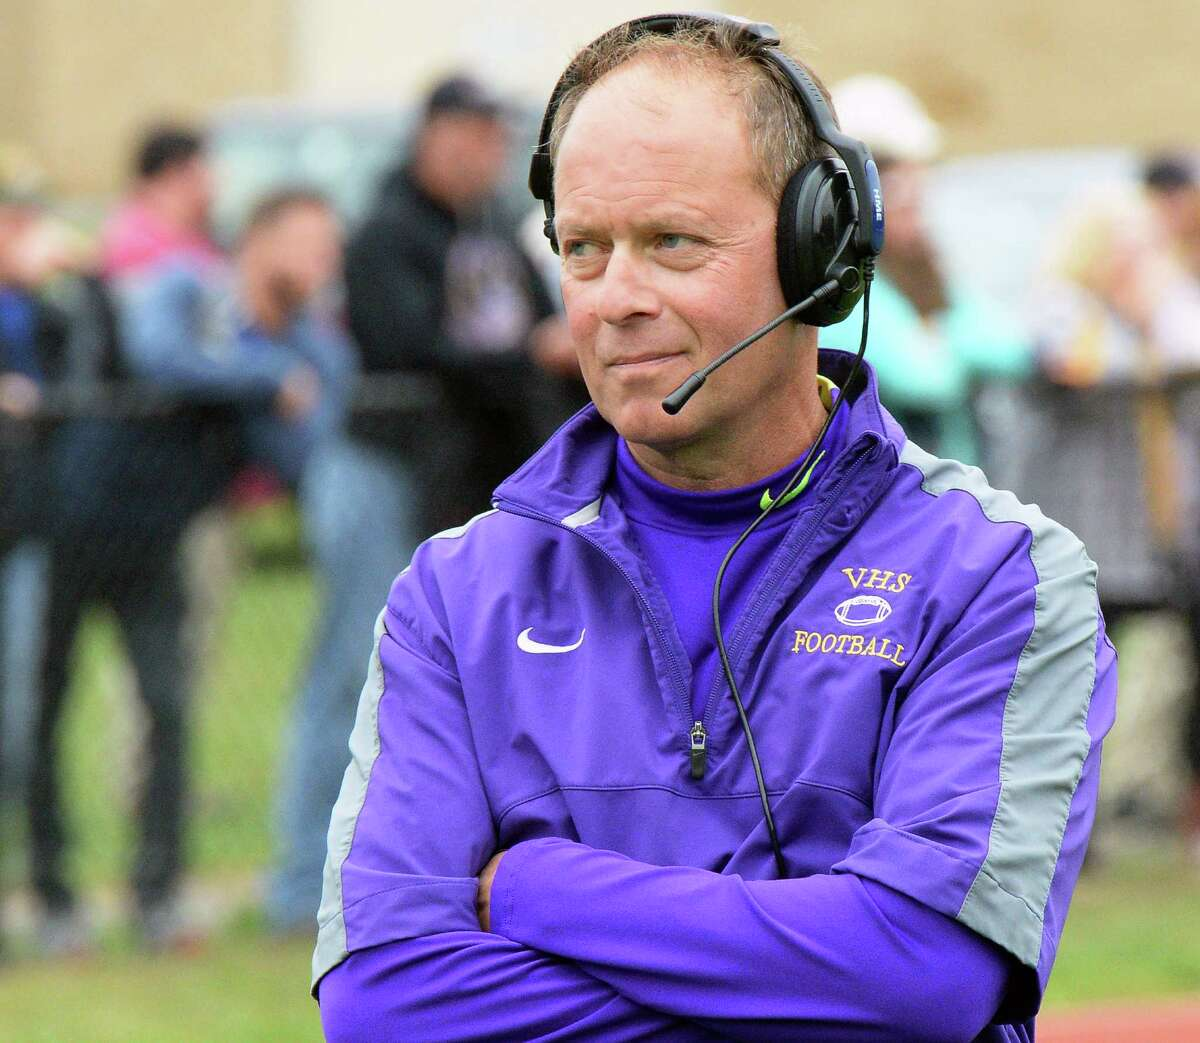 Voorheesville head coach Joe Sapienza watches from the sidelines during Saturday's game against Mechanicville Oct. 1, 2016 in Voorheesville, NY. (John Carl D'Annibale / Times Union)